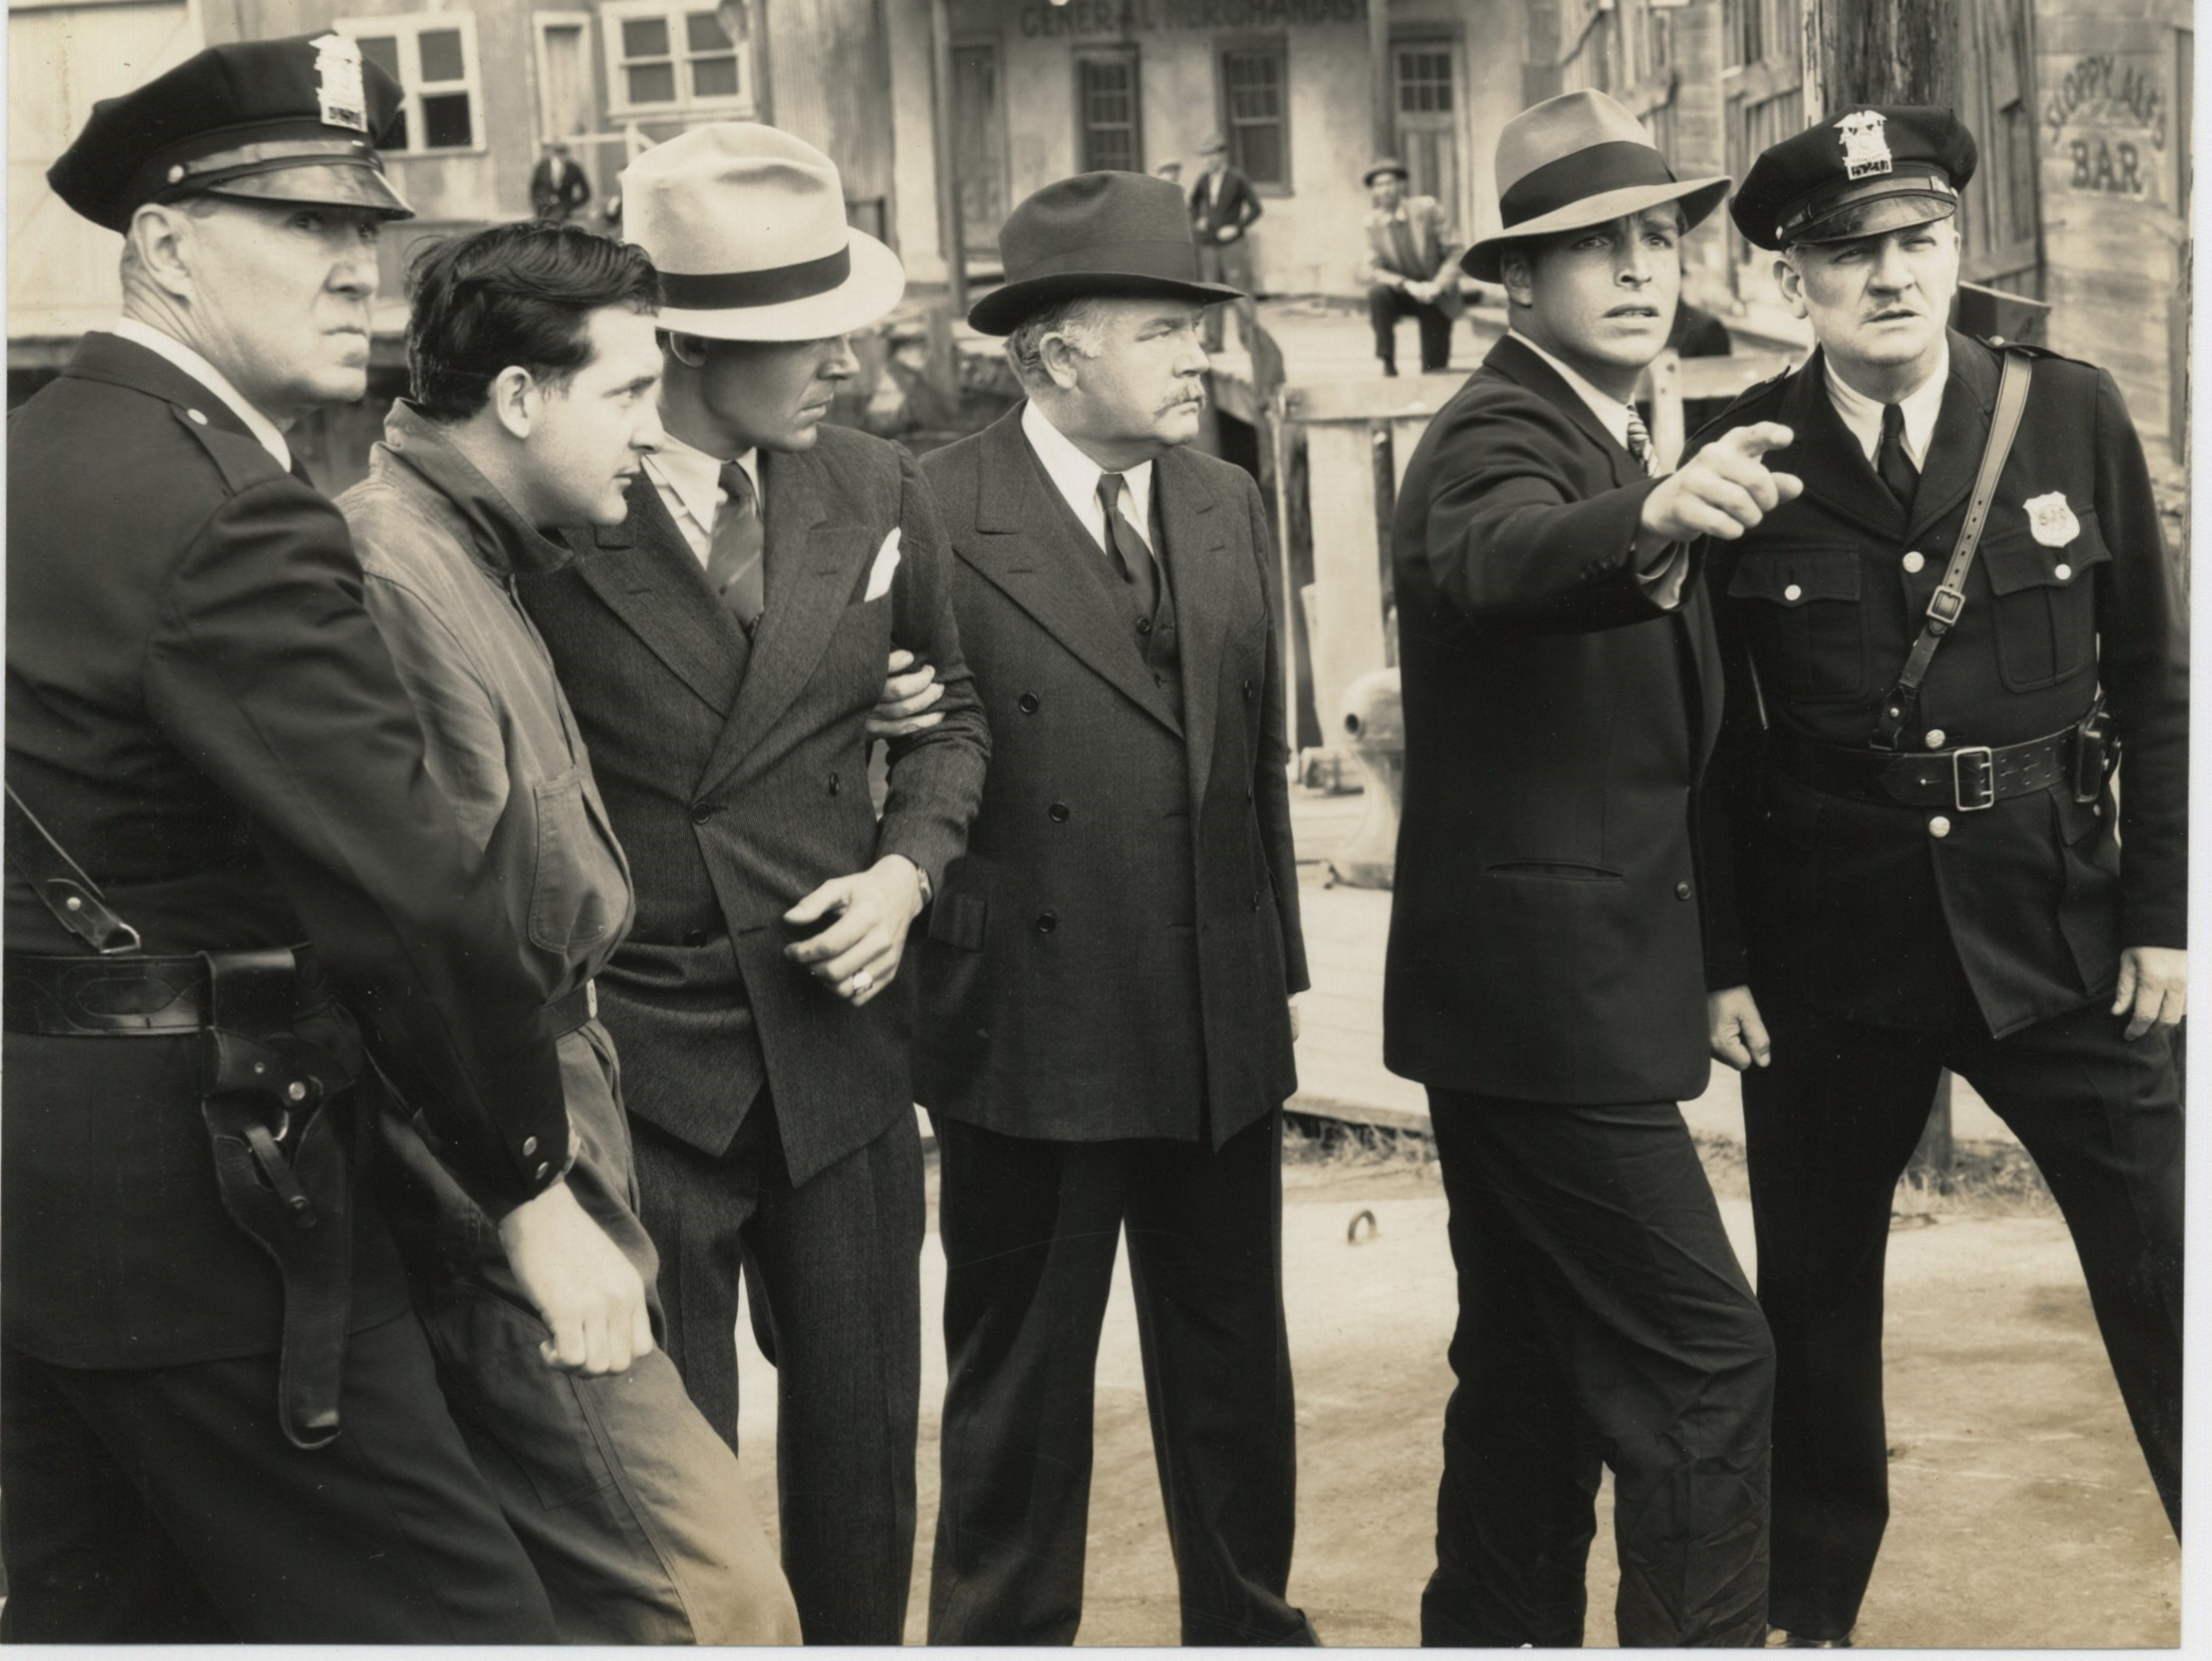 Wade Boteler, Buster Crabbe, Kernan Cripps, Donald Gallaher, William Gould, and Hugh Huntley in Red Barry (1938)